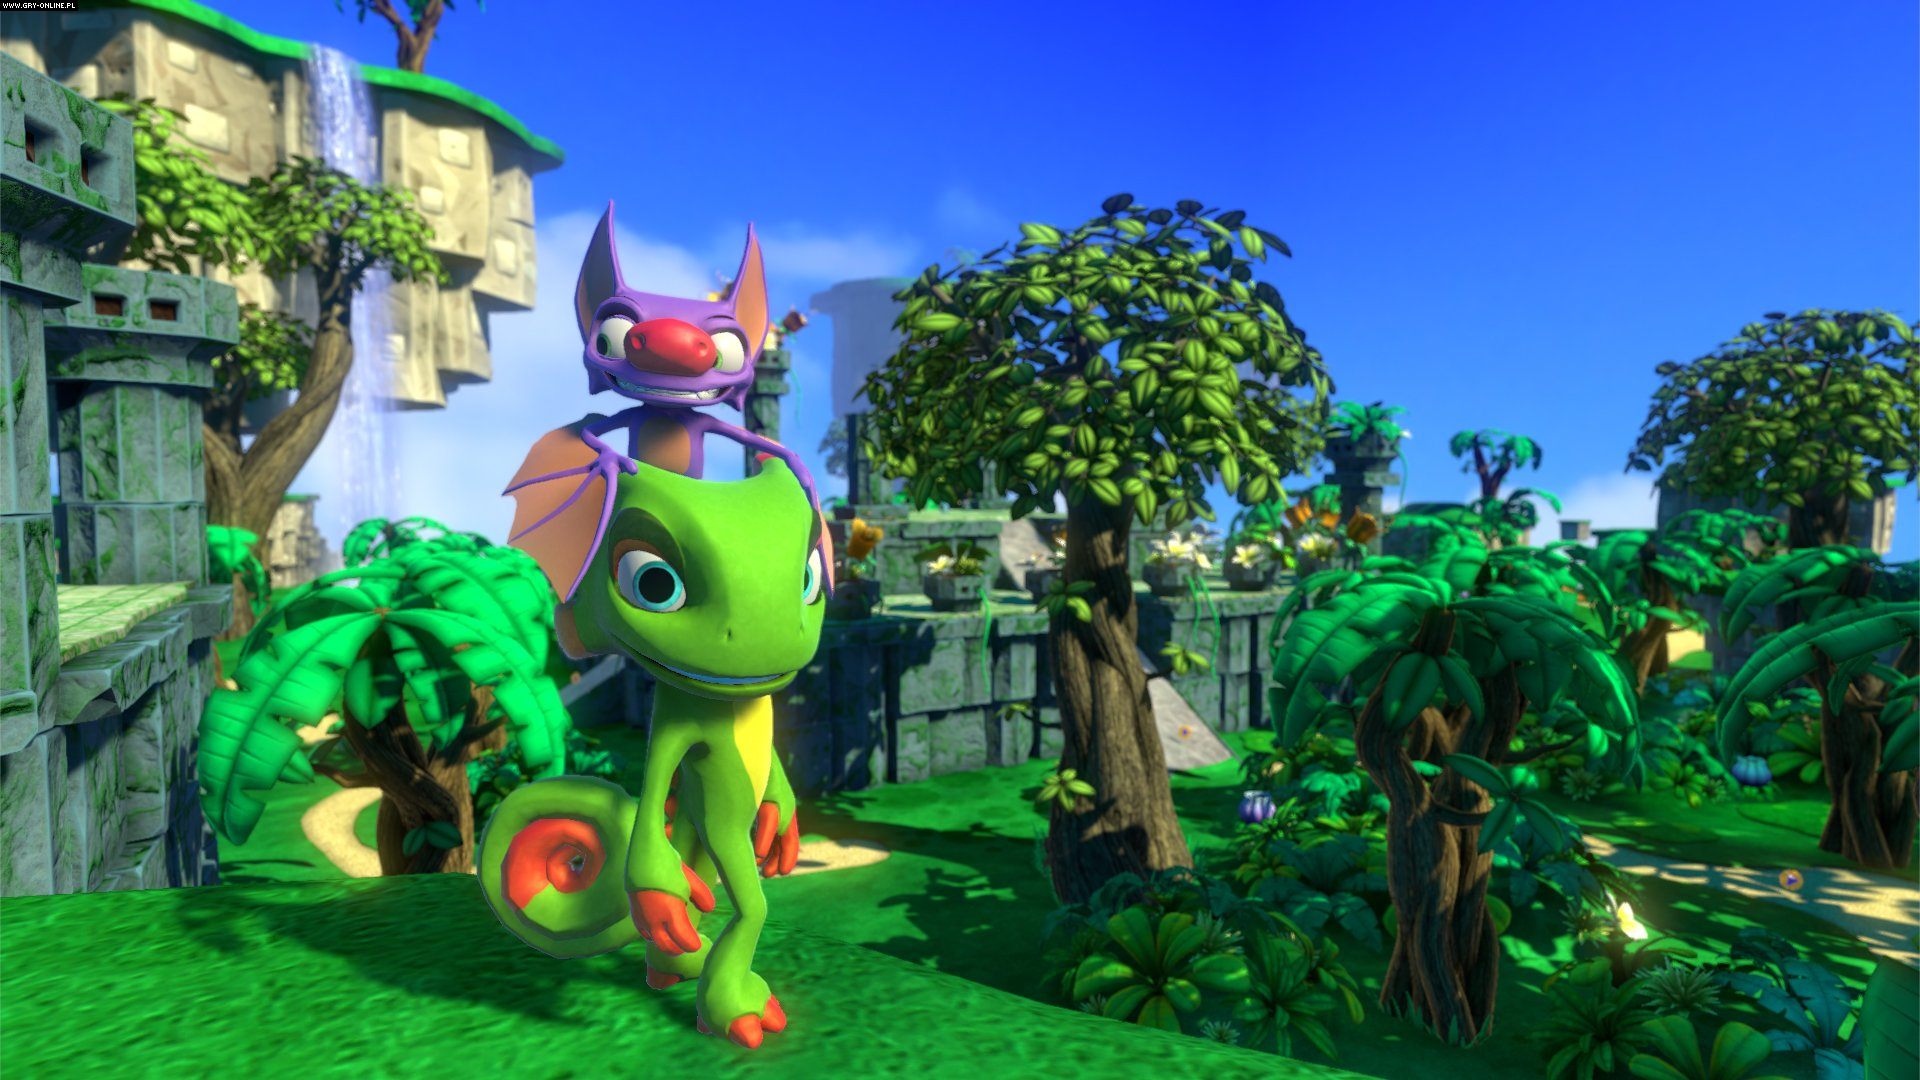 Yooka-Laylee PC, WiiU, XONE, PS4 Games Image 15/30, Playtonic Games, Team 17